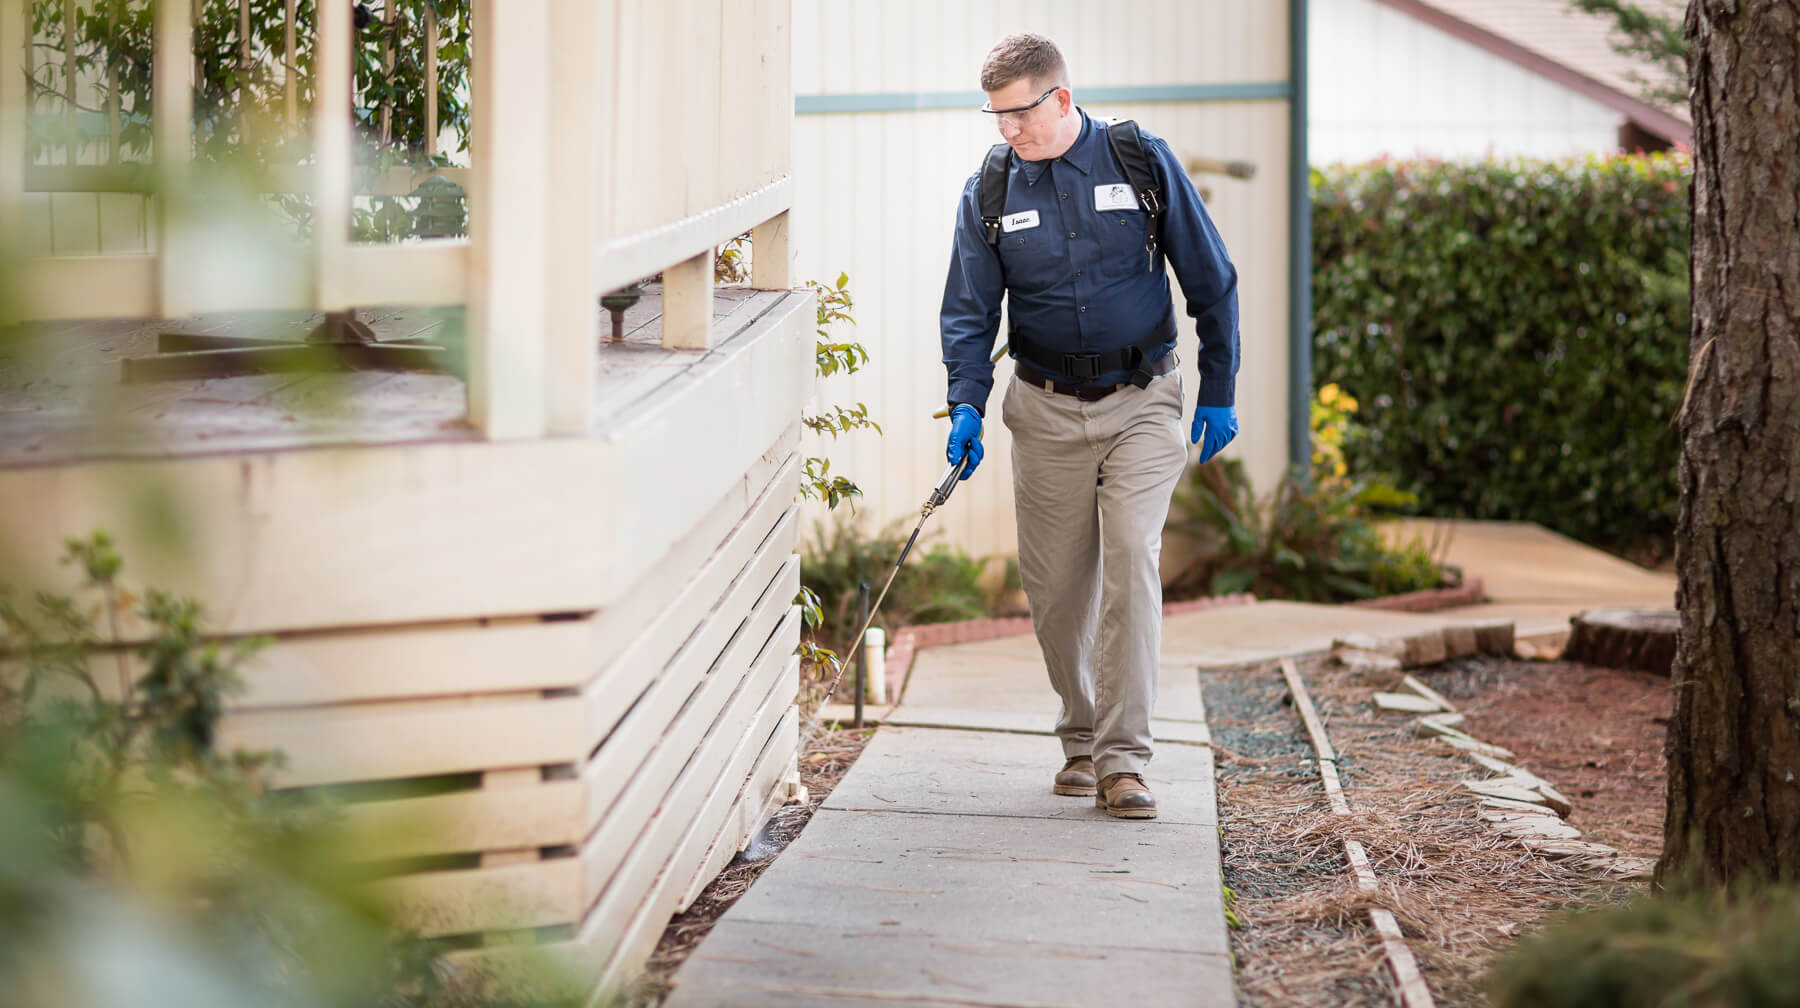 Pest Control Penrith Can Ensure The Complete Extermination of Termites